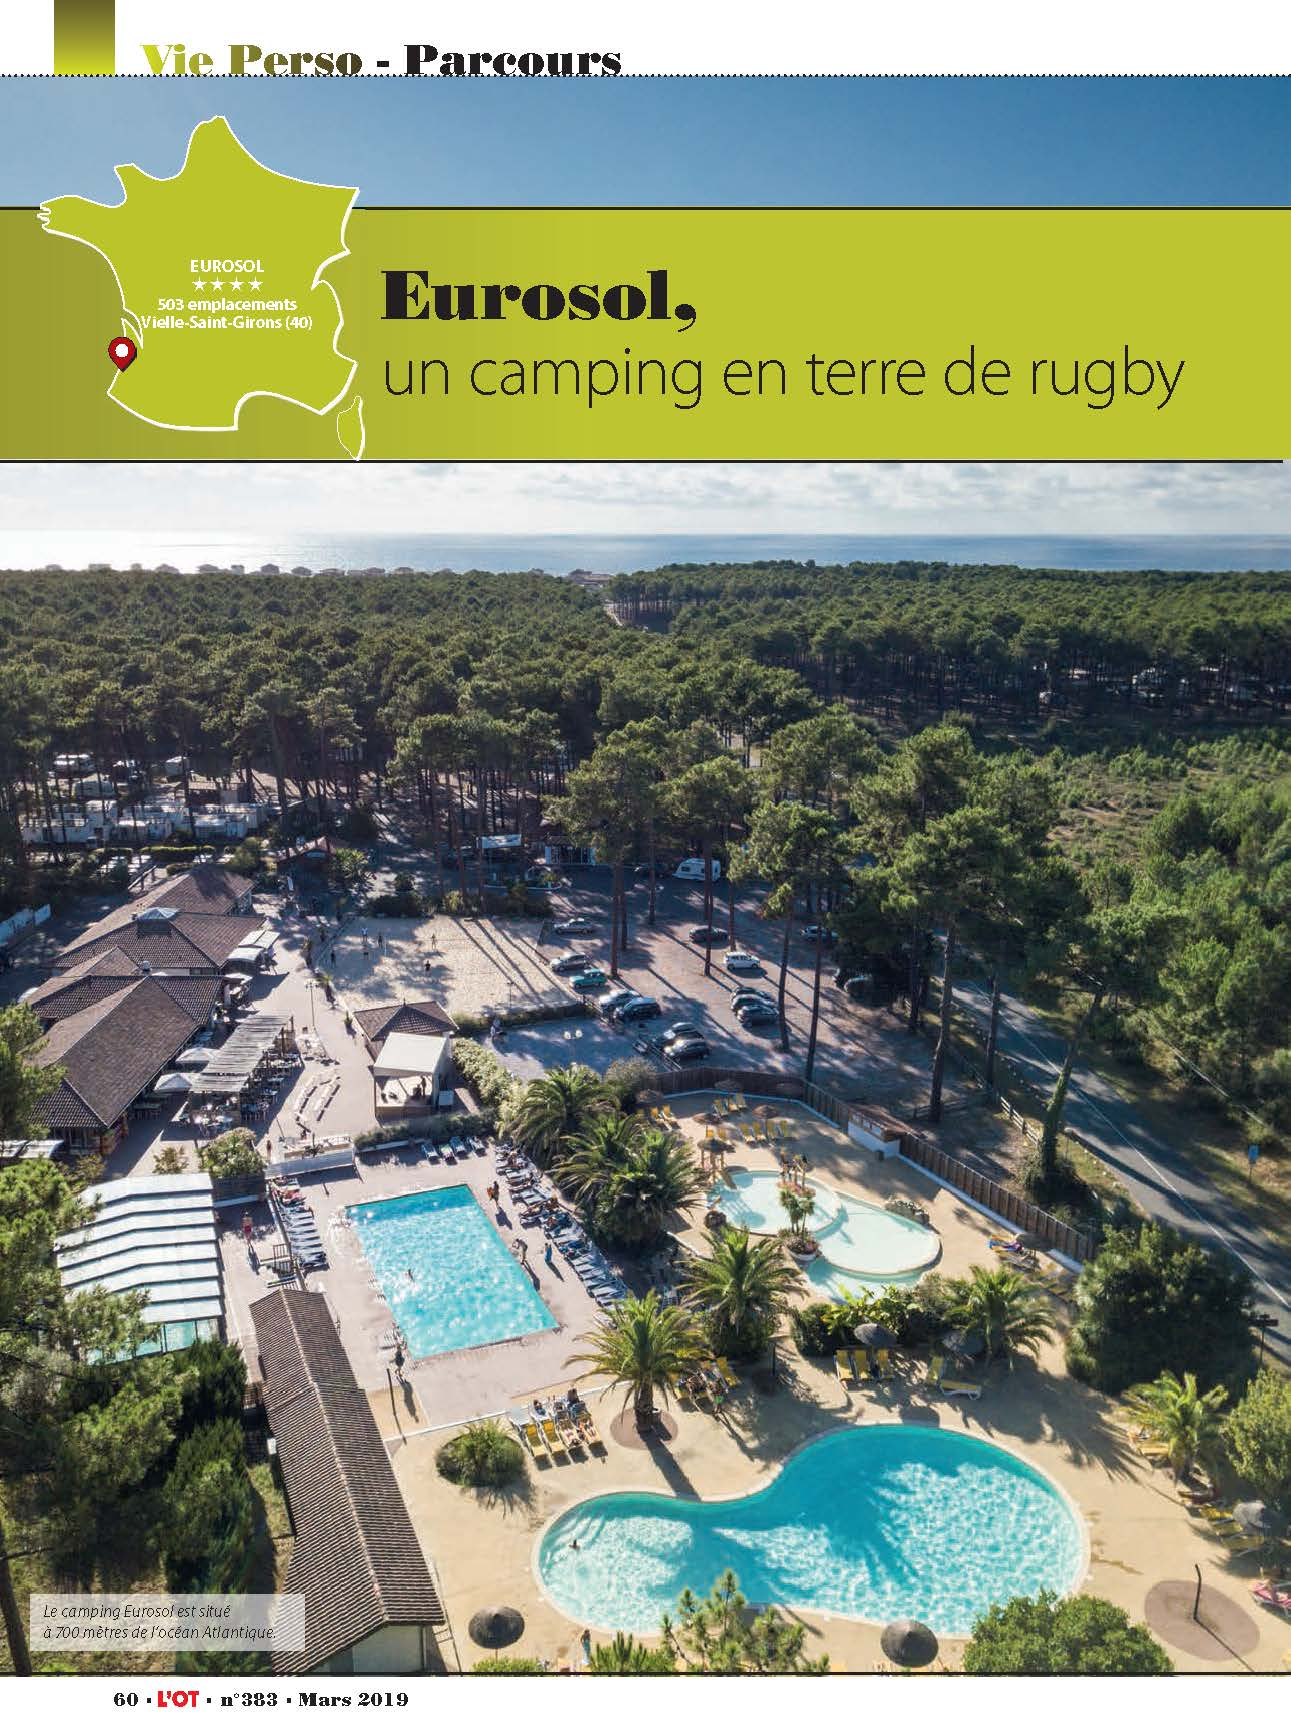 Camping Eurosol terre de rugby